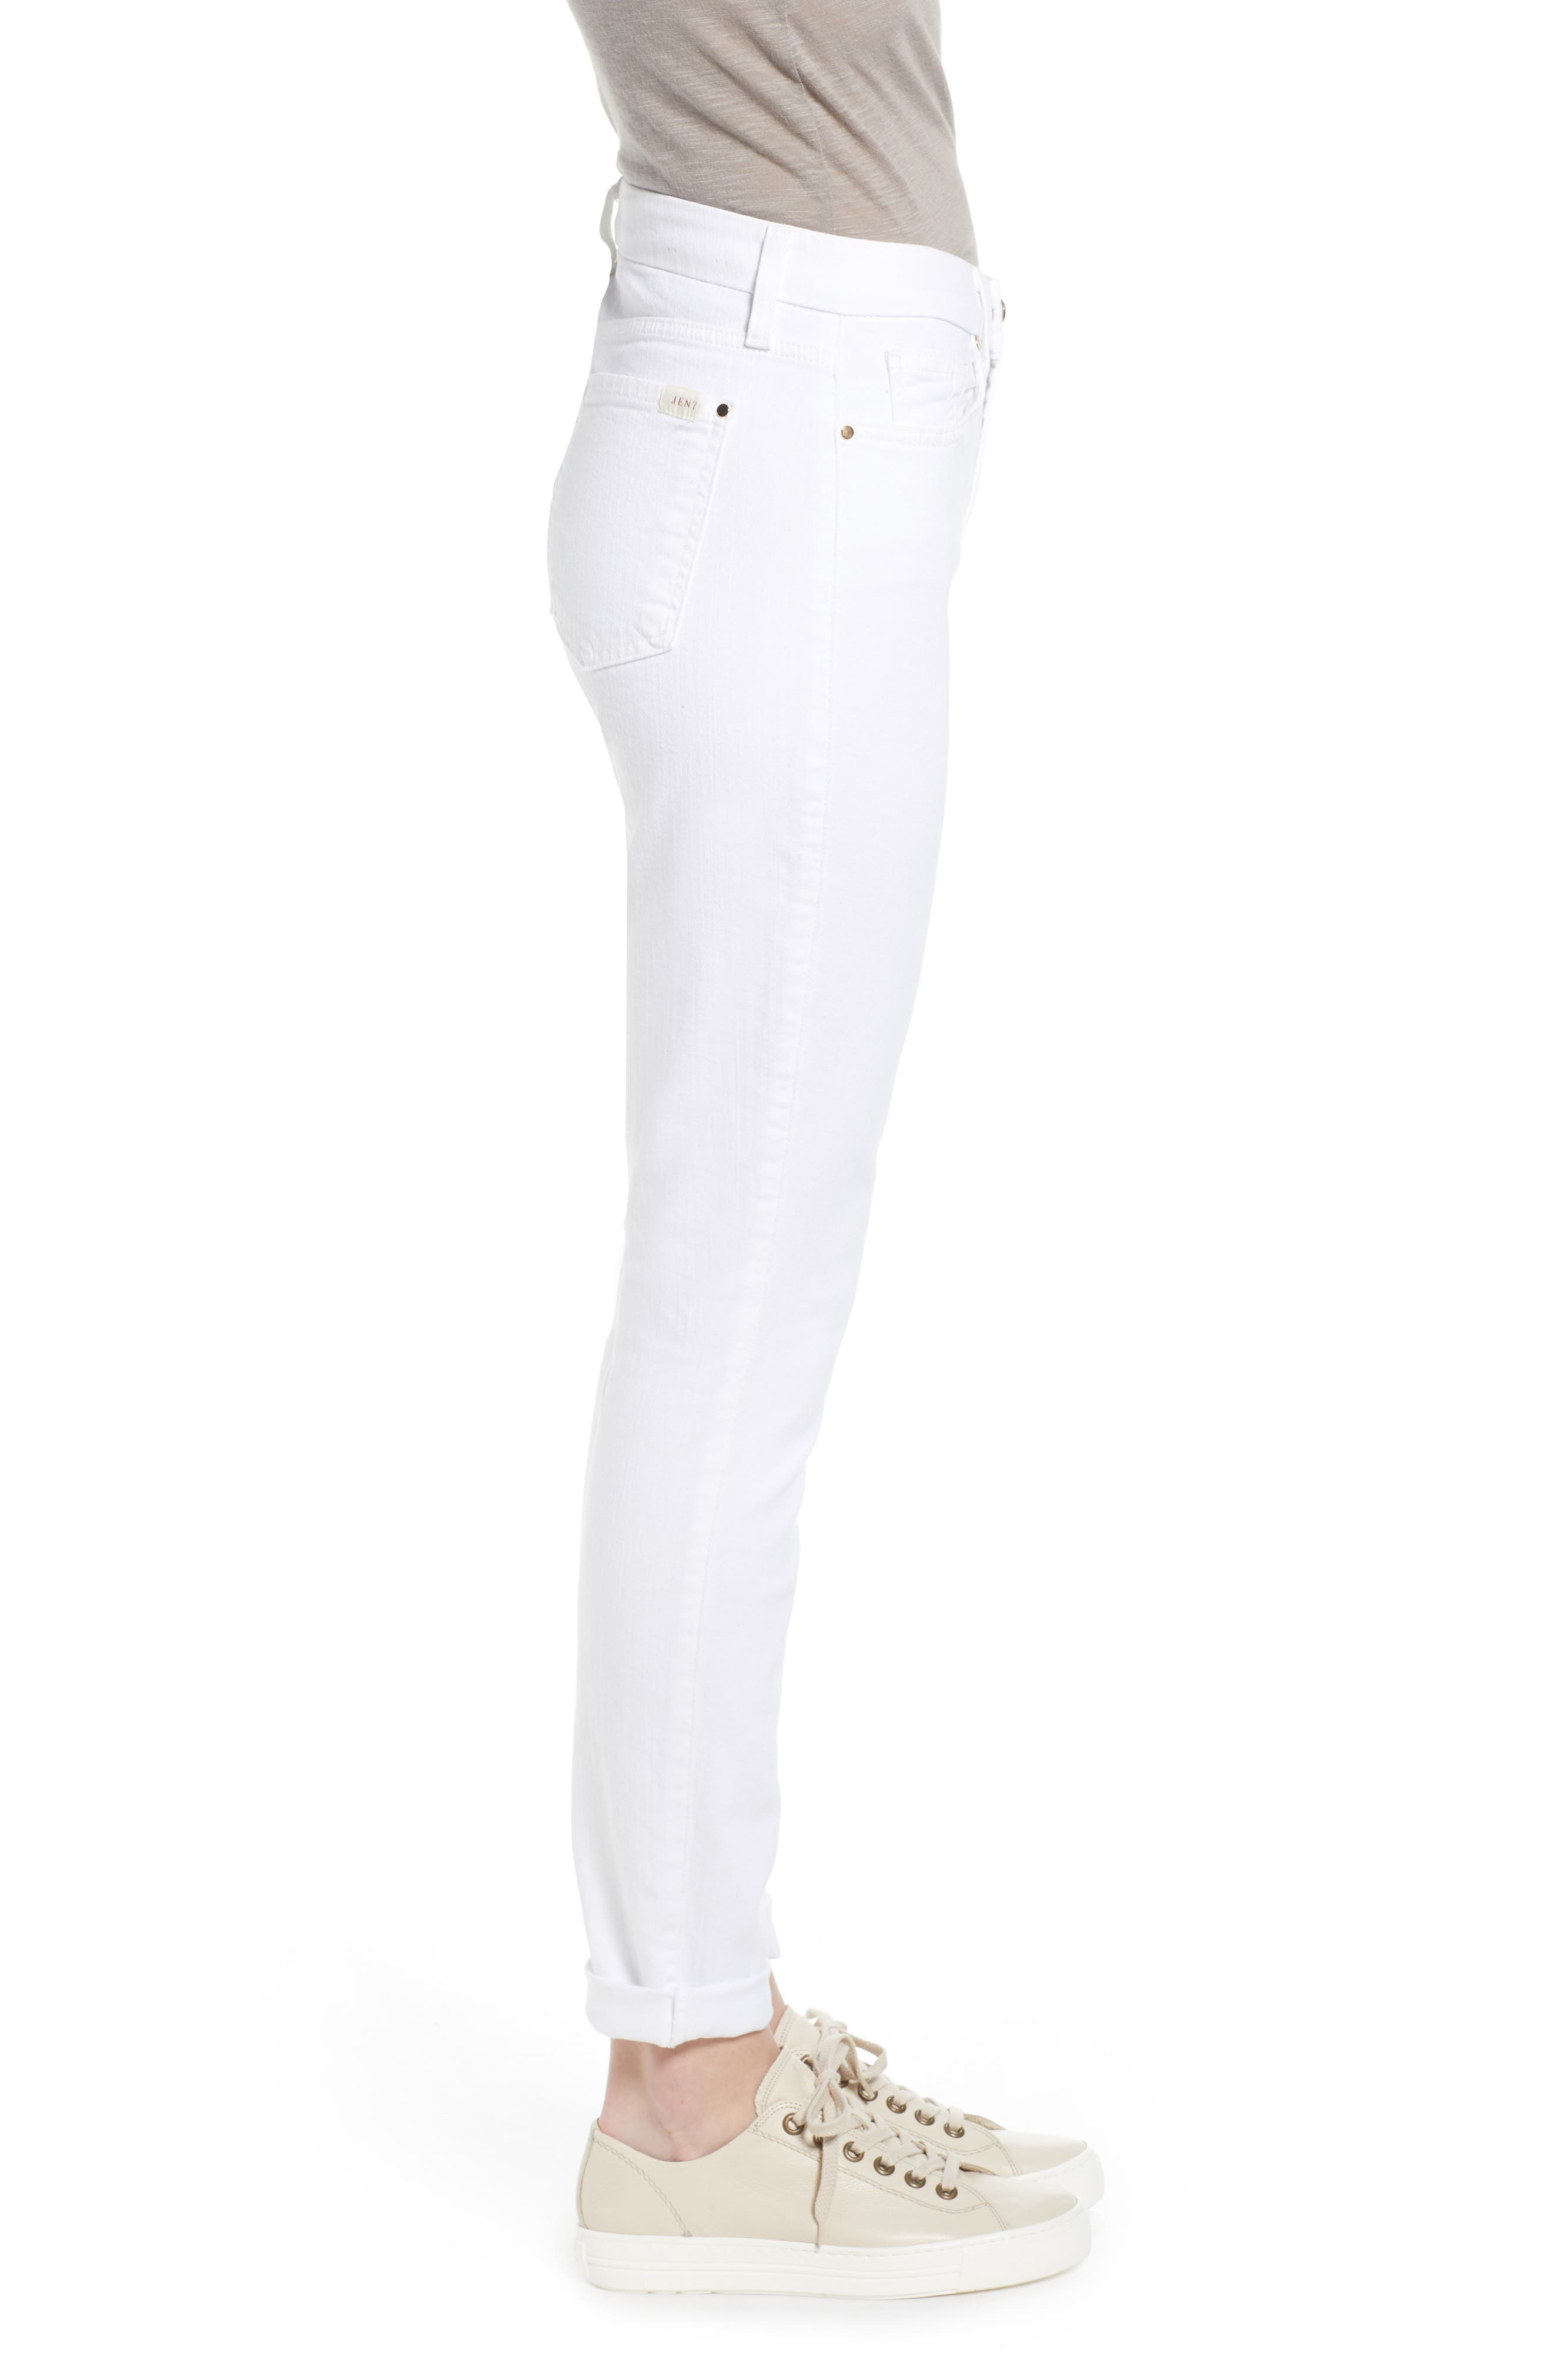 JEN7 BY 7 FOR ALL MANKIND, Stretch Skinny Jeans, Alternate thumbnail 4, color, WHITE